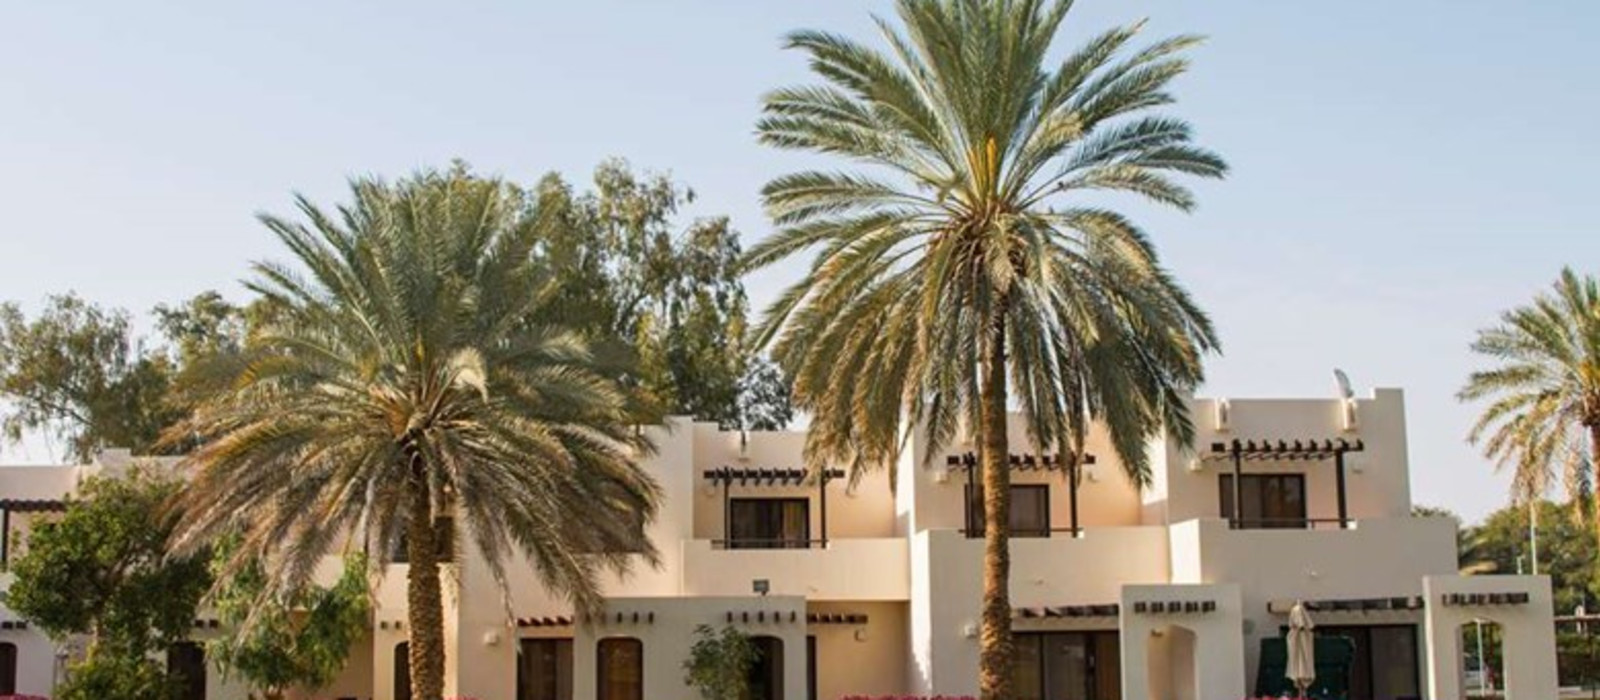 Hotel Radisson Blue  & Resort, Al Ain Vereinigte Arabische Emirate